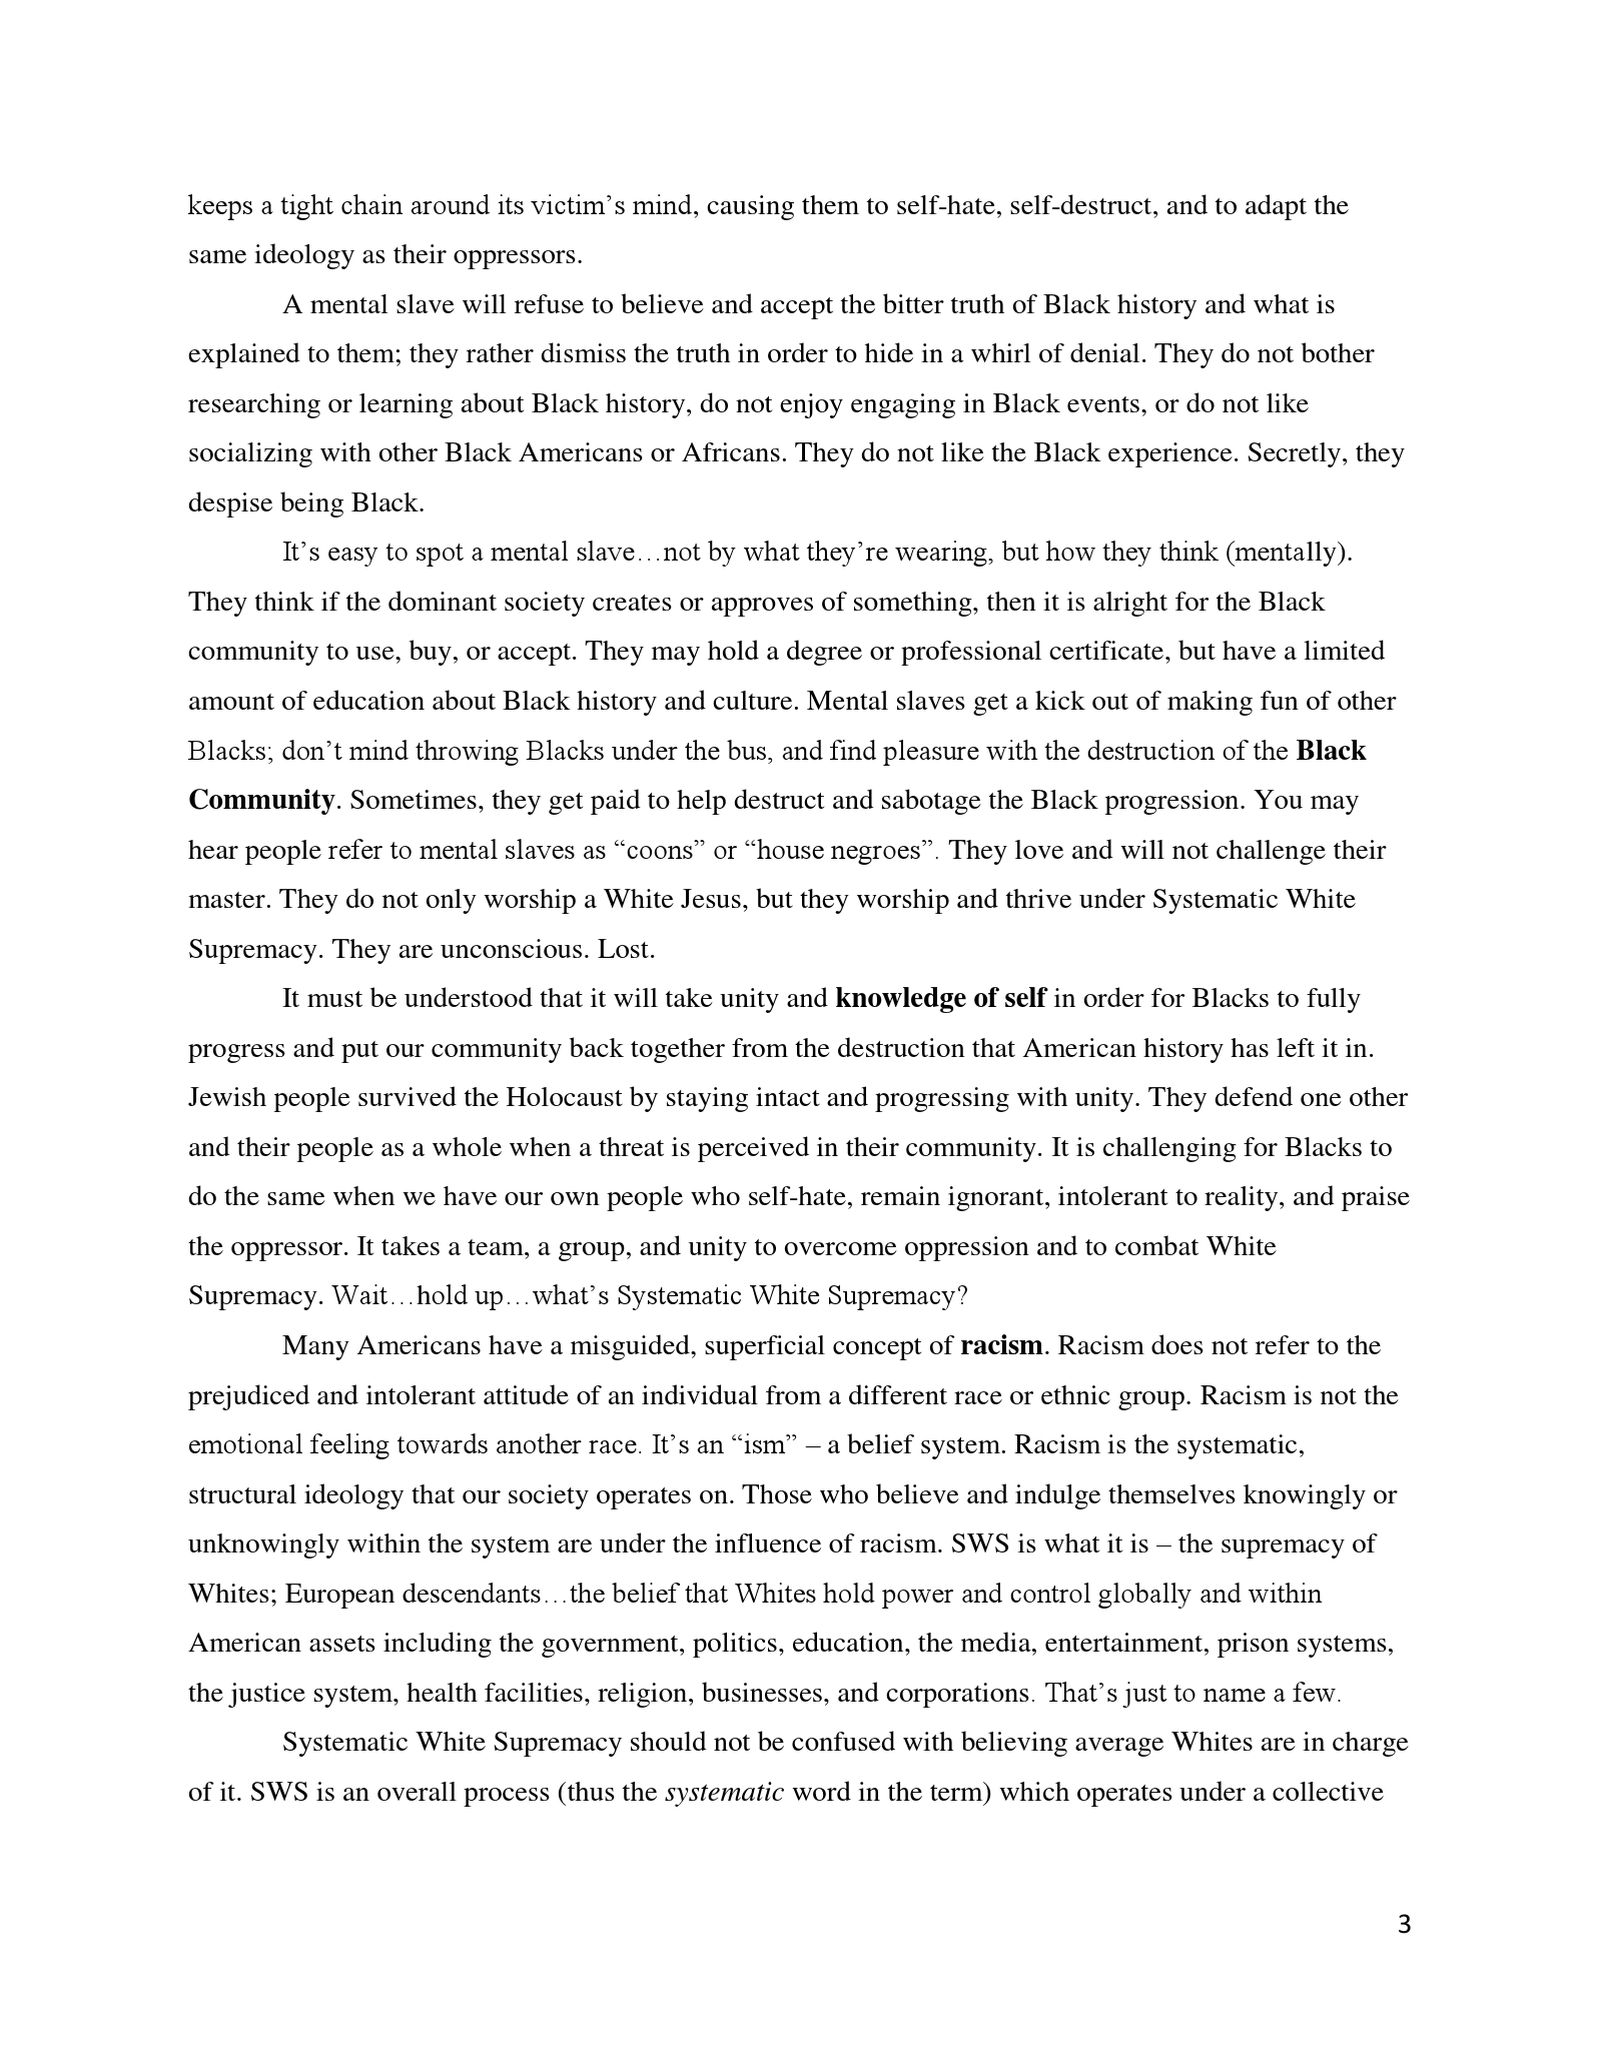 004 Essay Example Racism In America Large Striking Full